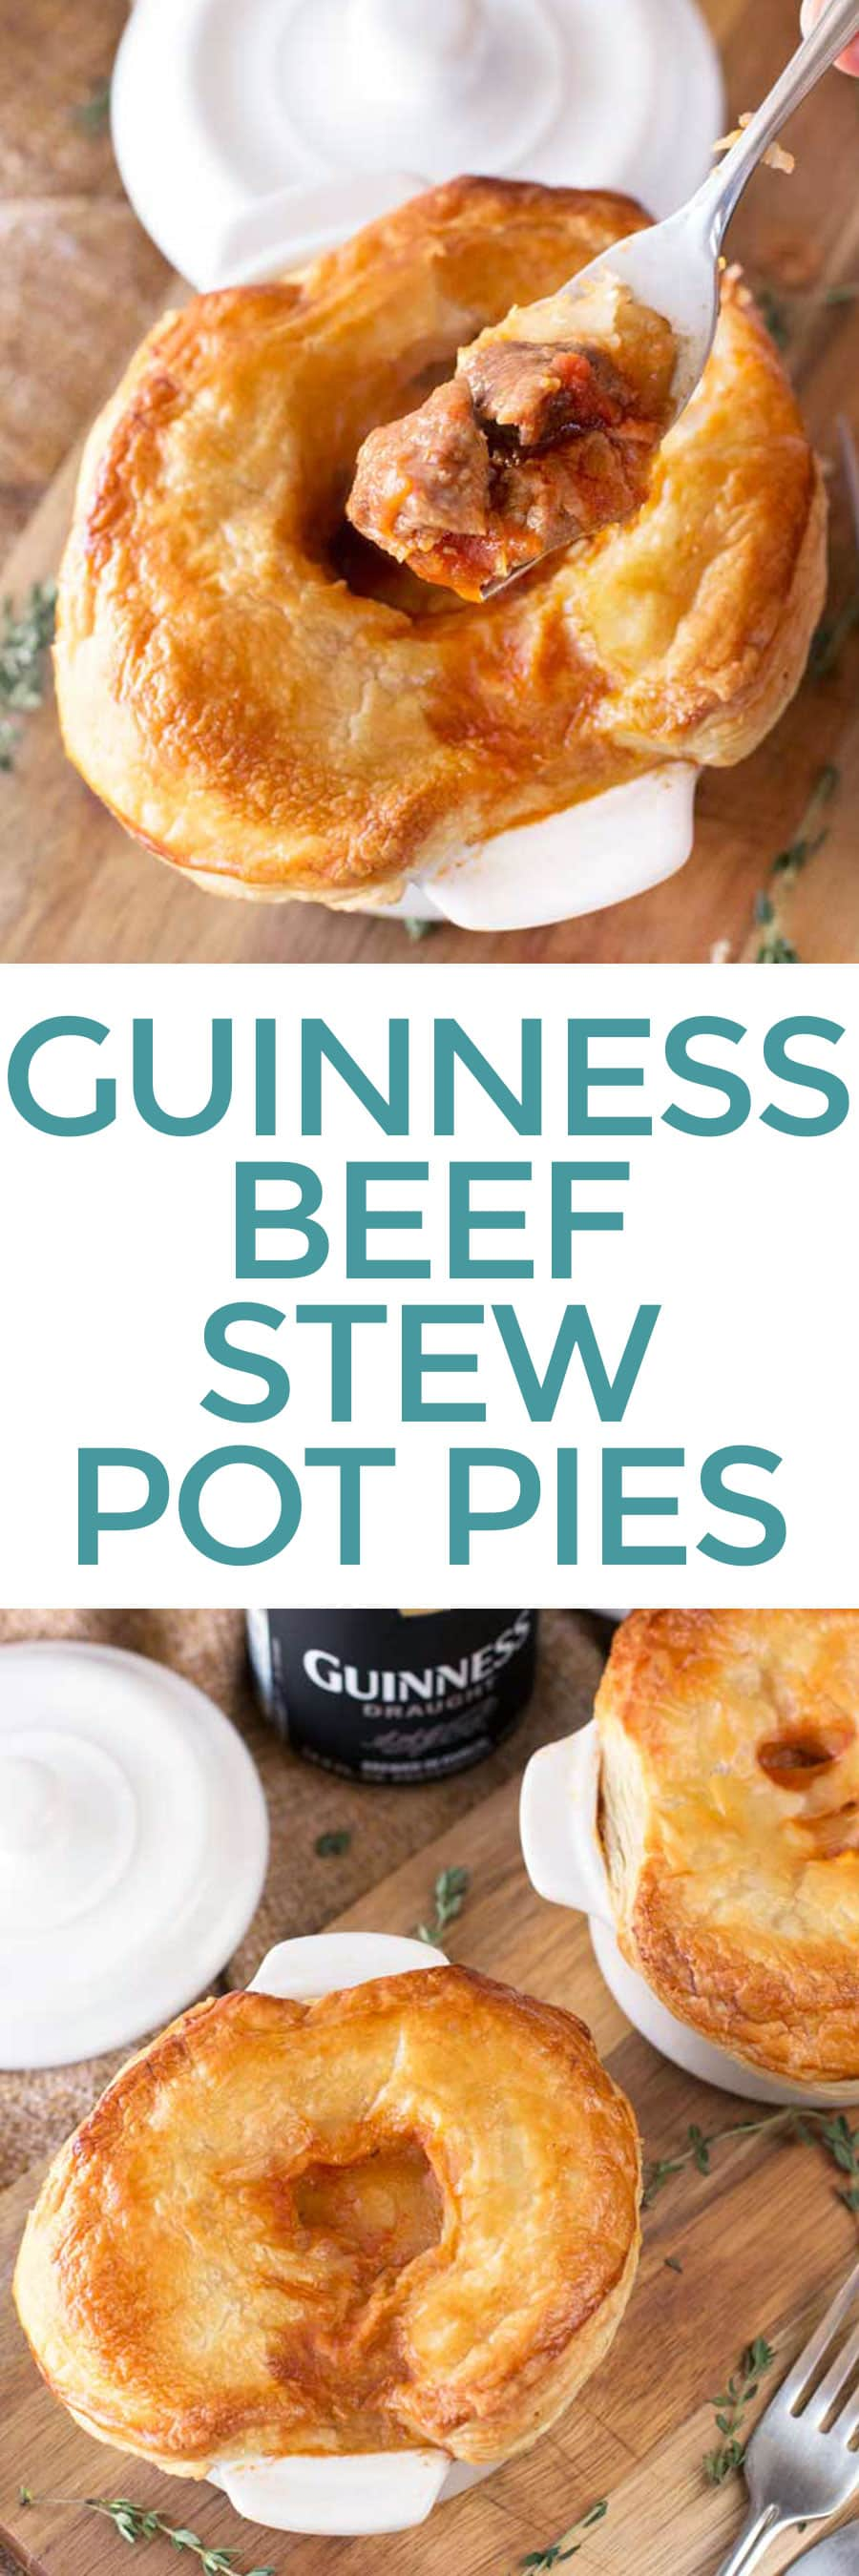 Guinness Beef Stew Pot Pies | cakenknife.com #appetizer #beef #snack #stpatricksday